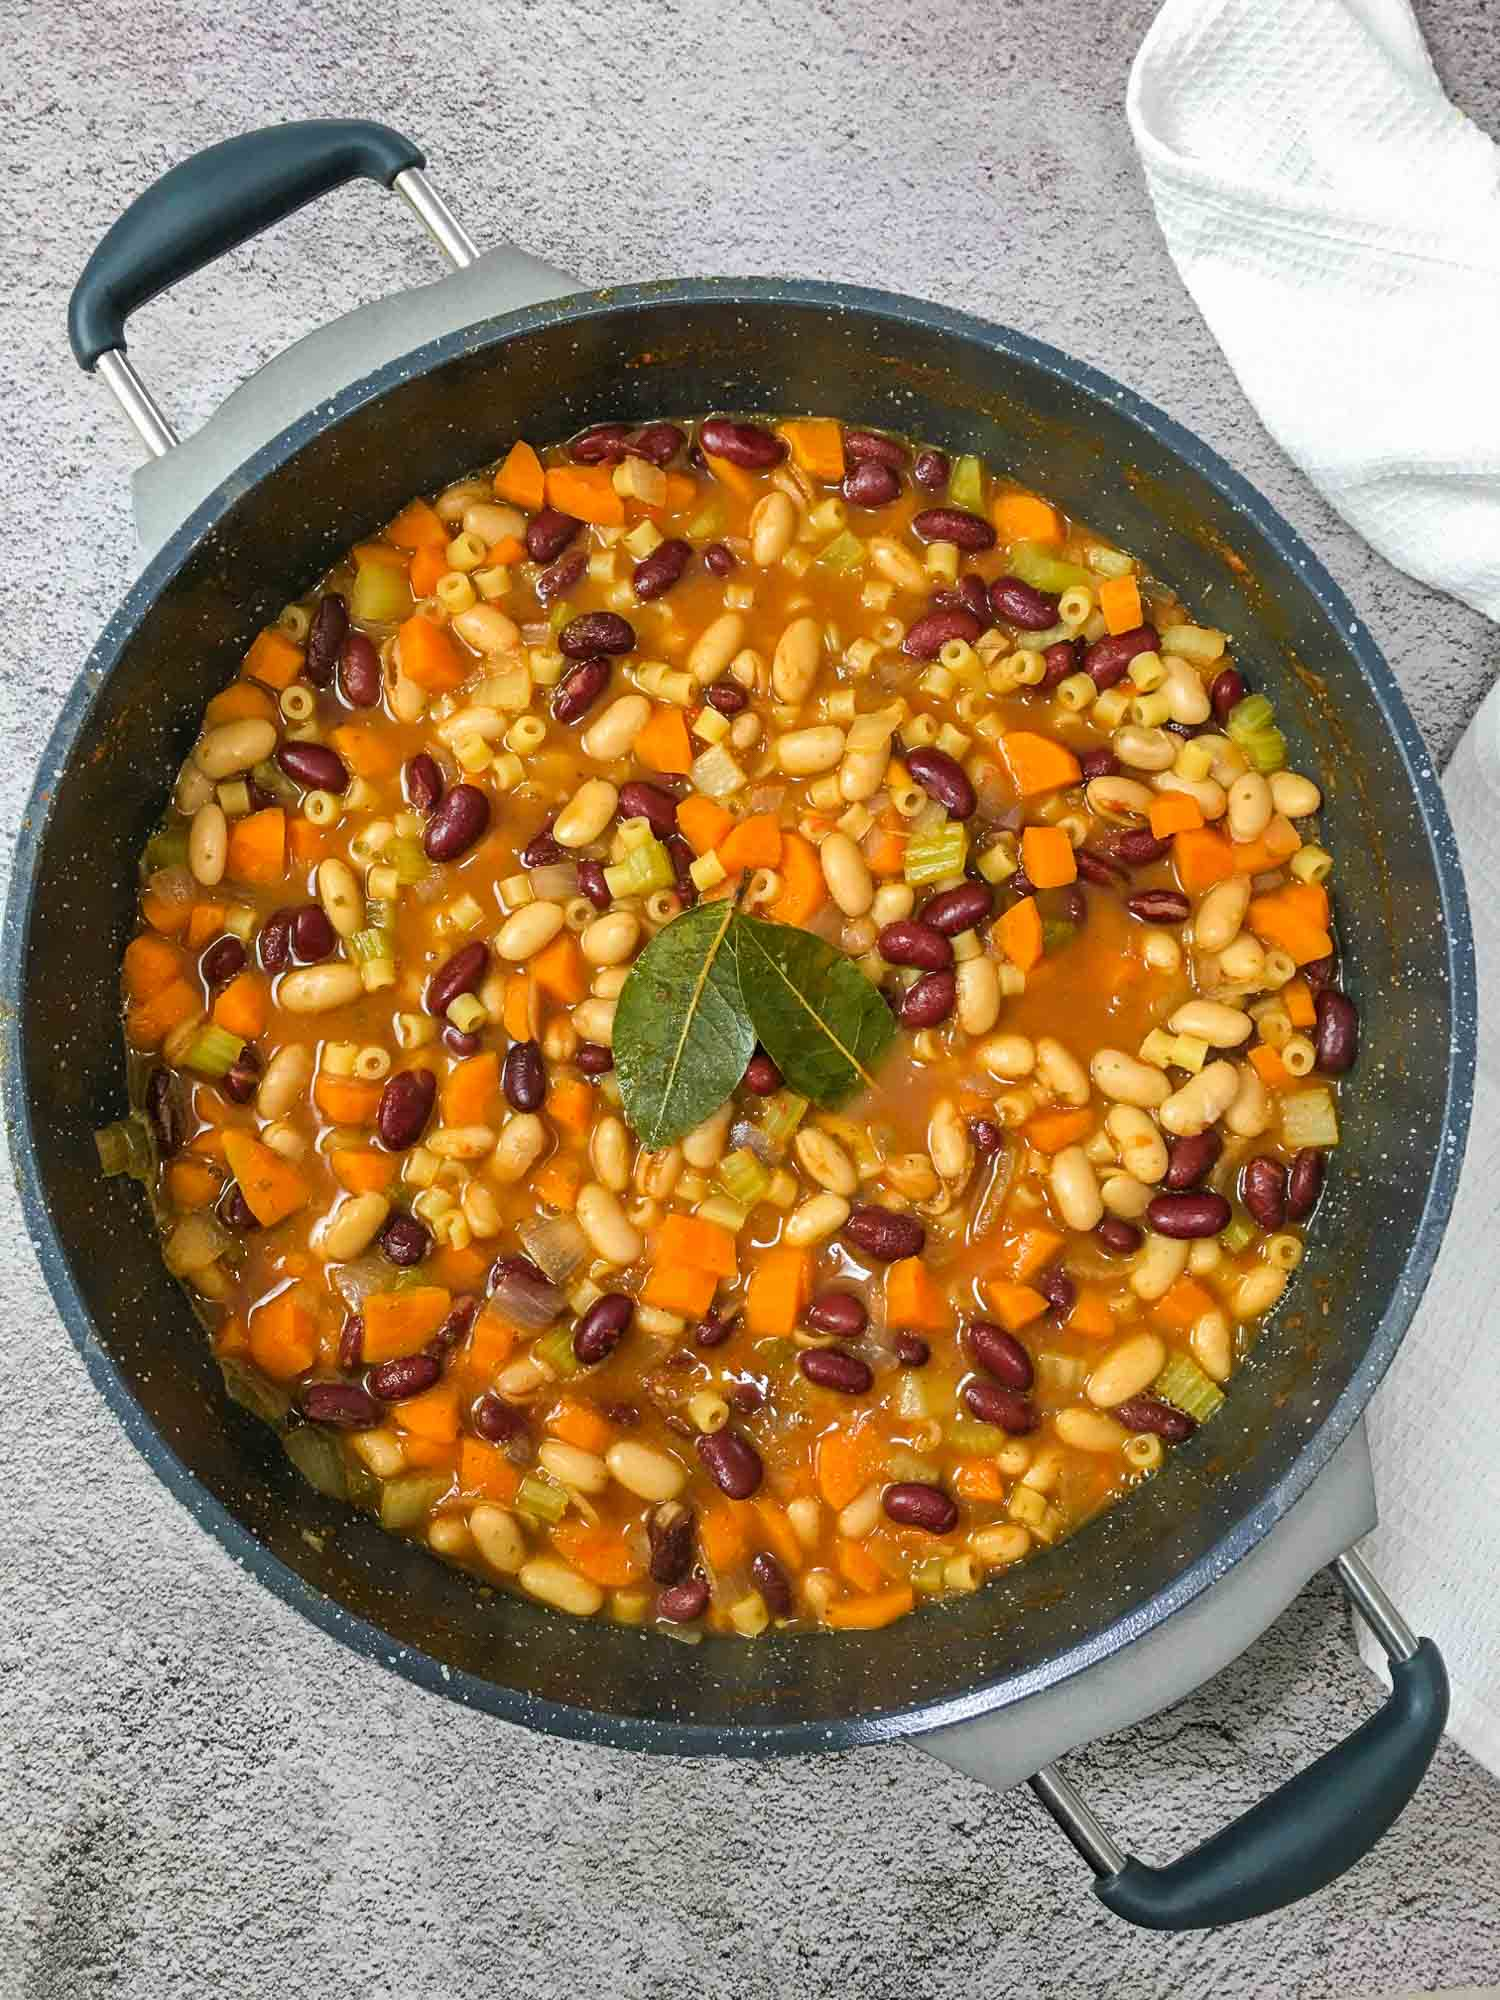 large deep skillet with pasta e fagioli with bay leaves in the center